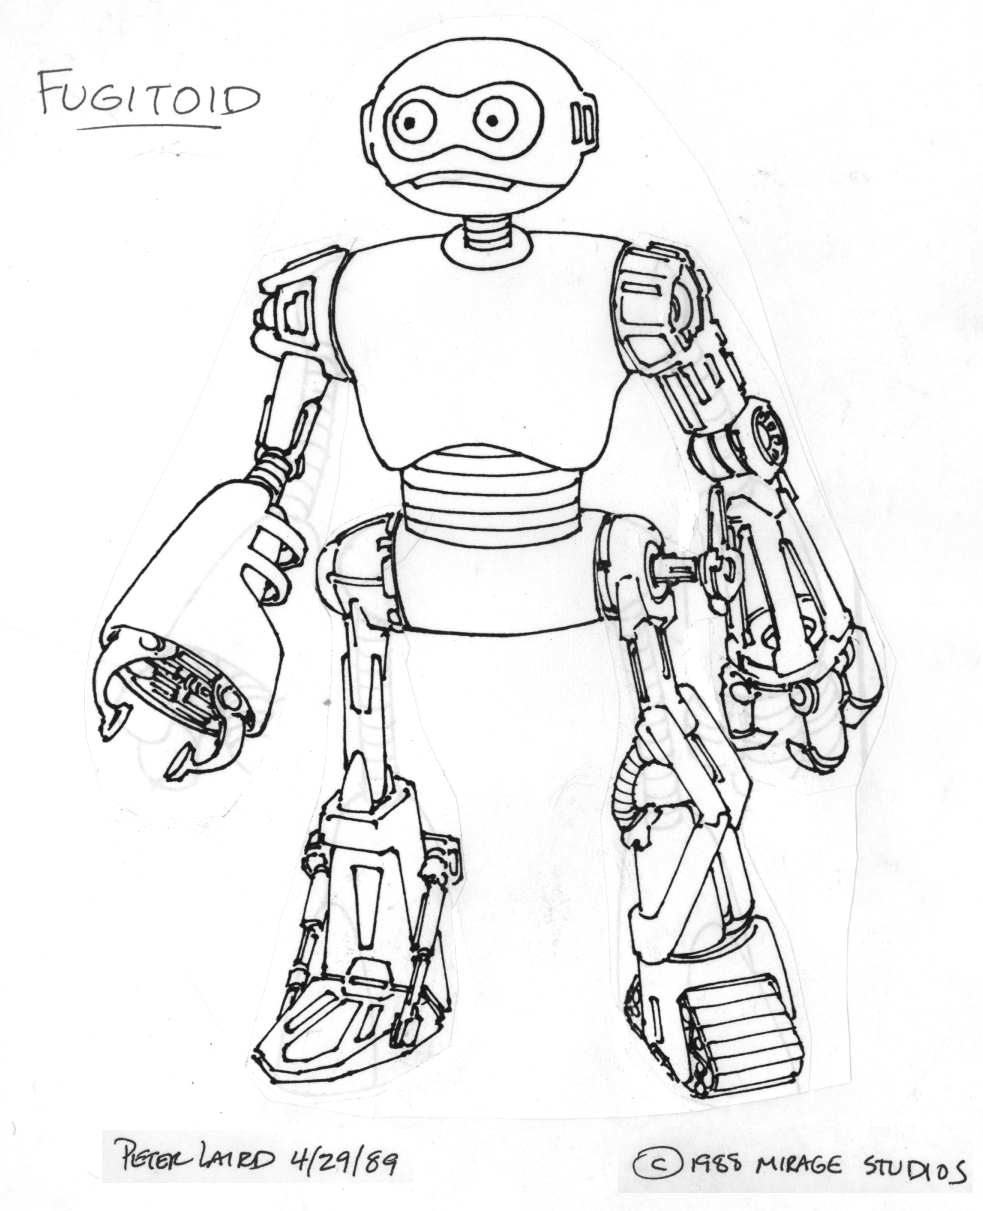 Tmnt 2003 coloring pages ~ Peter Laird's TMNT blog: January 2013